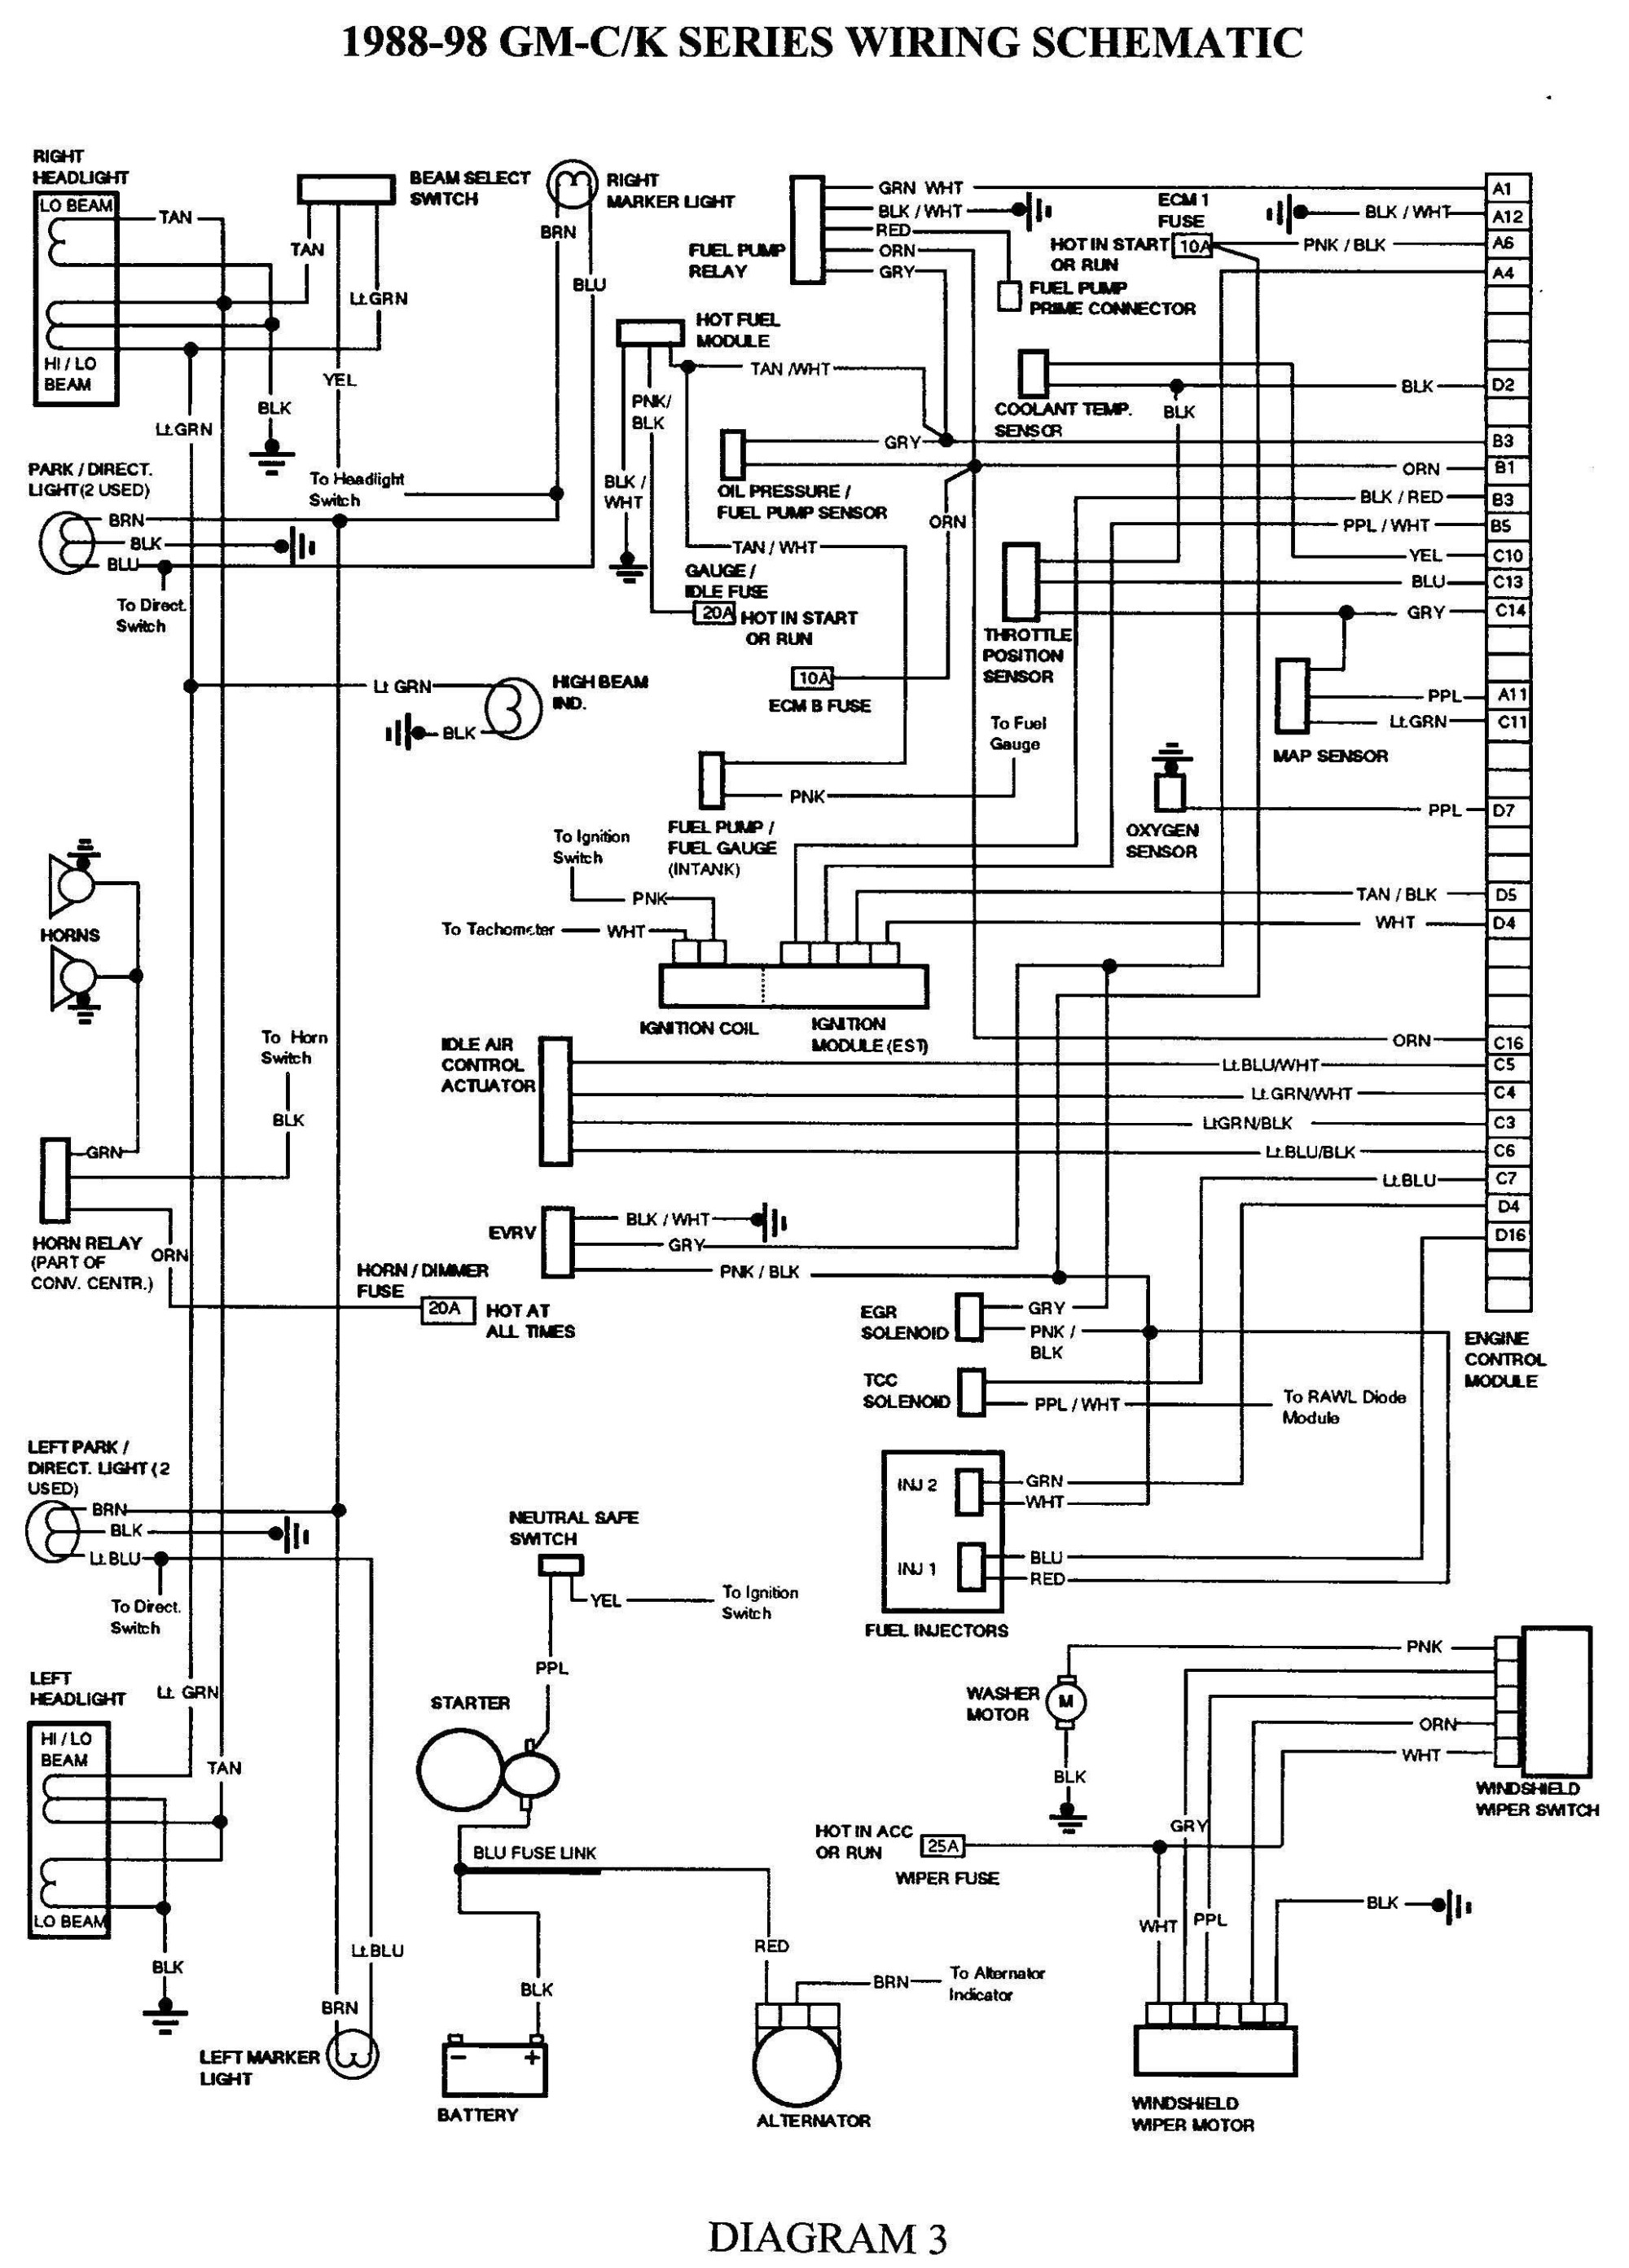 hight resolution of 2001 chevy impala 3 8 engine diagram 1992 caprice 5 7 engine wiring harness mastering wiring